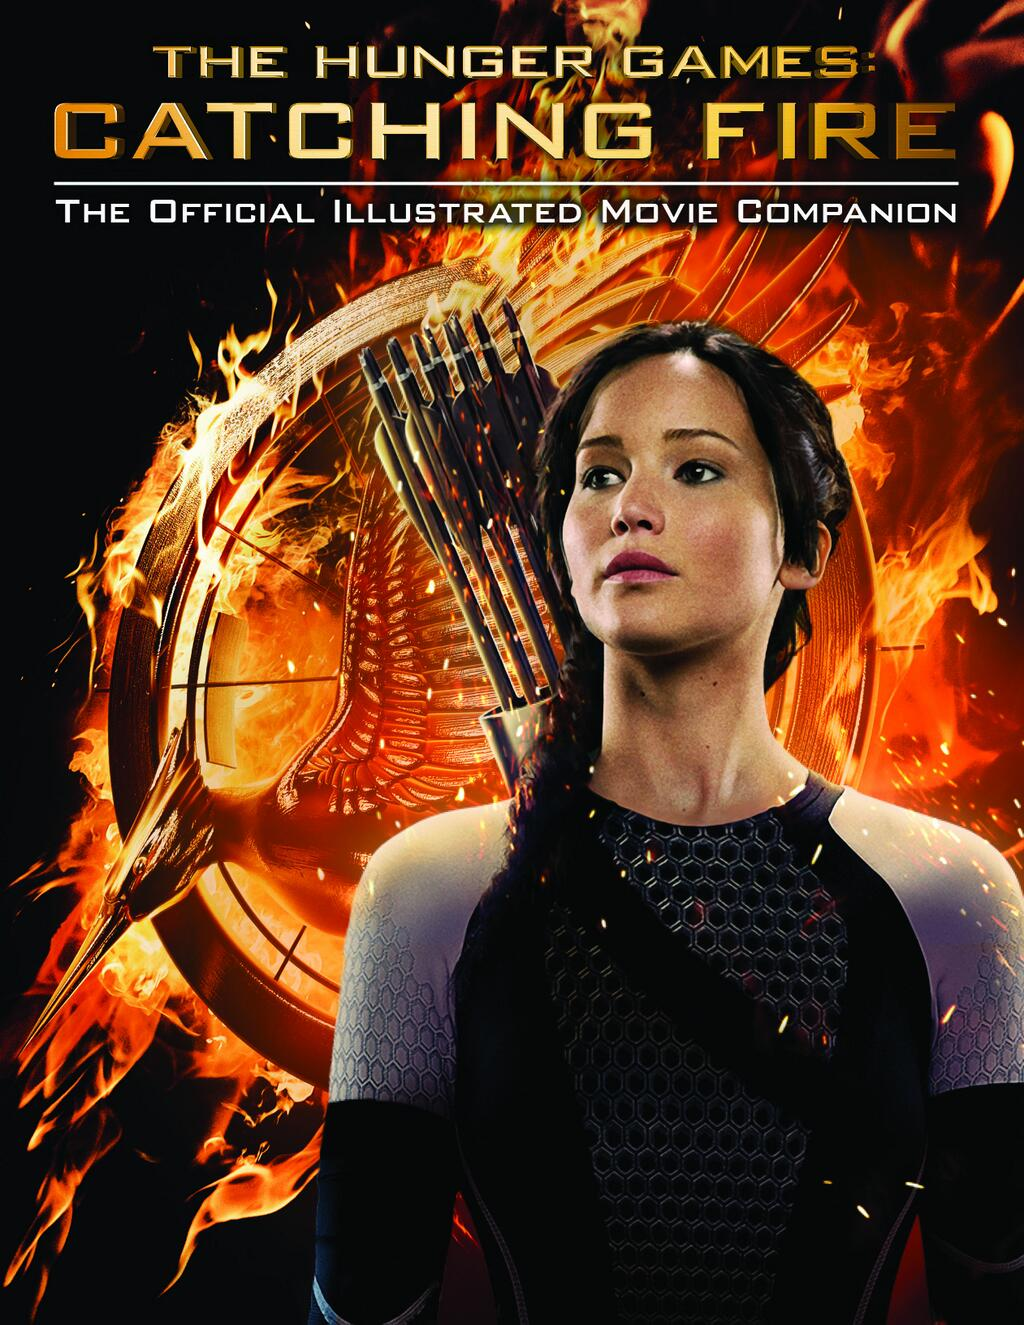 Book Cover Photography Games ~ The hunger games catching fire official illustrated movie